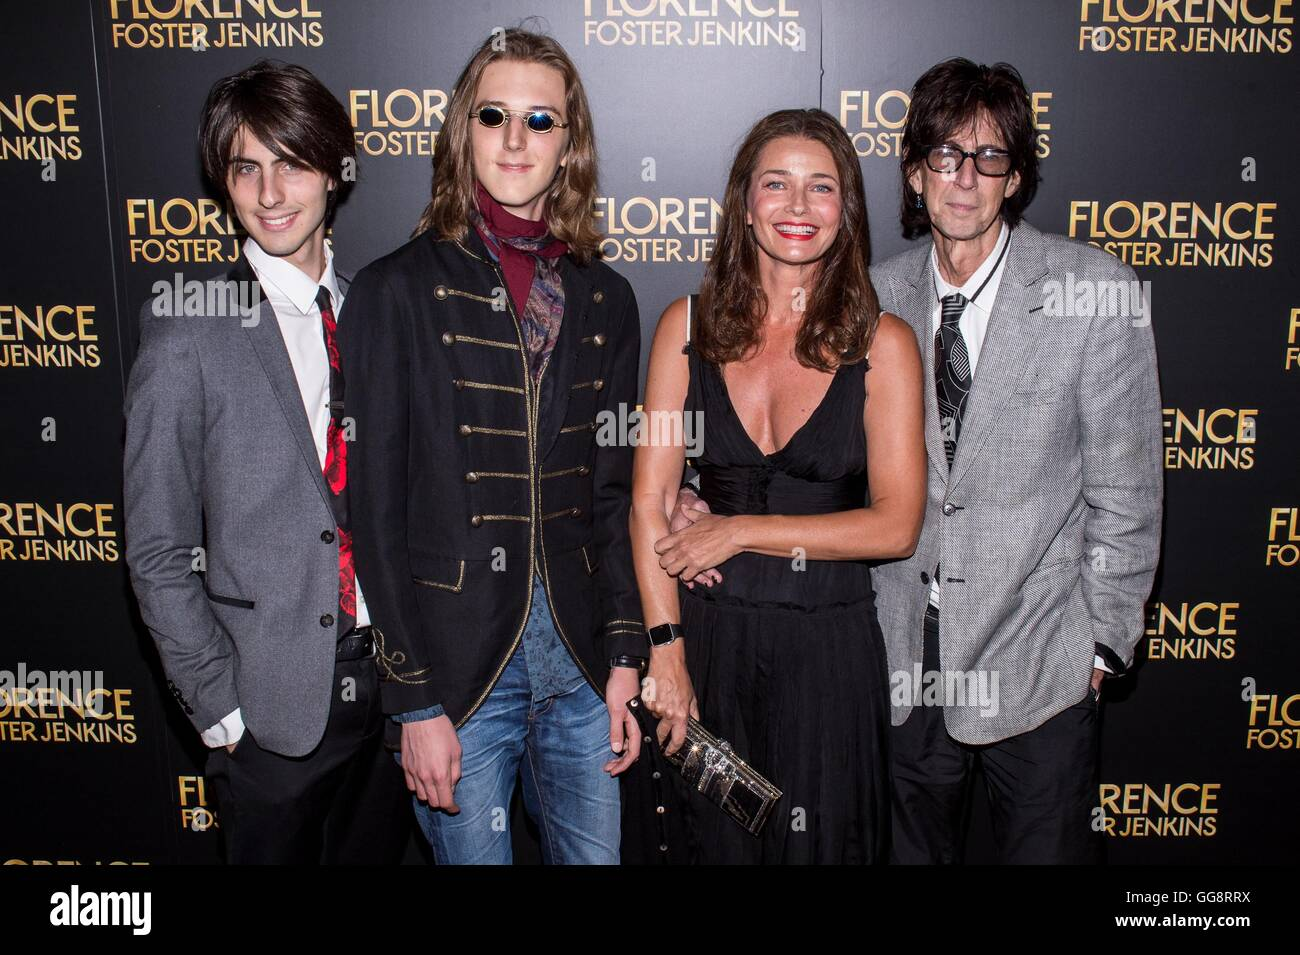 Oliver Ocasek And Paulina Porizkova High Resolution Stock Photography And Images Alamy 56 fotos e imágenes de jonathan raven ocasek. https www alamy com stock photo new york ny usa 9th aug 2016 jonathan ocasek oliver ocasek paulina 113291022 html